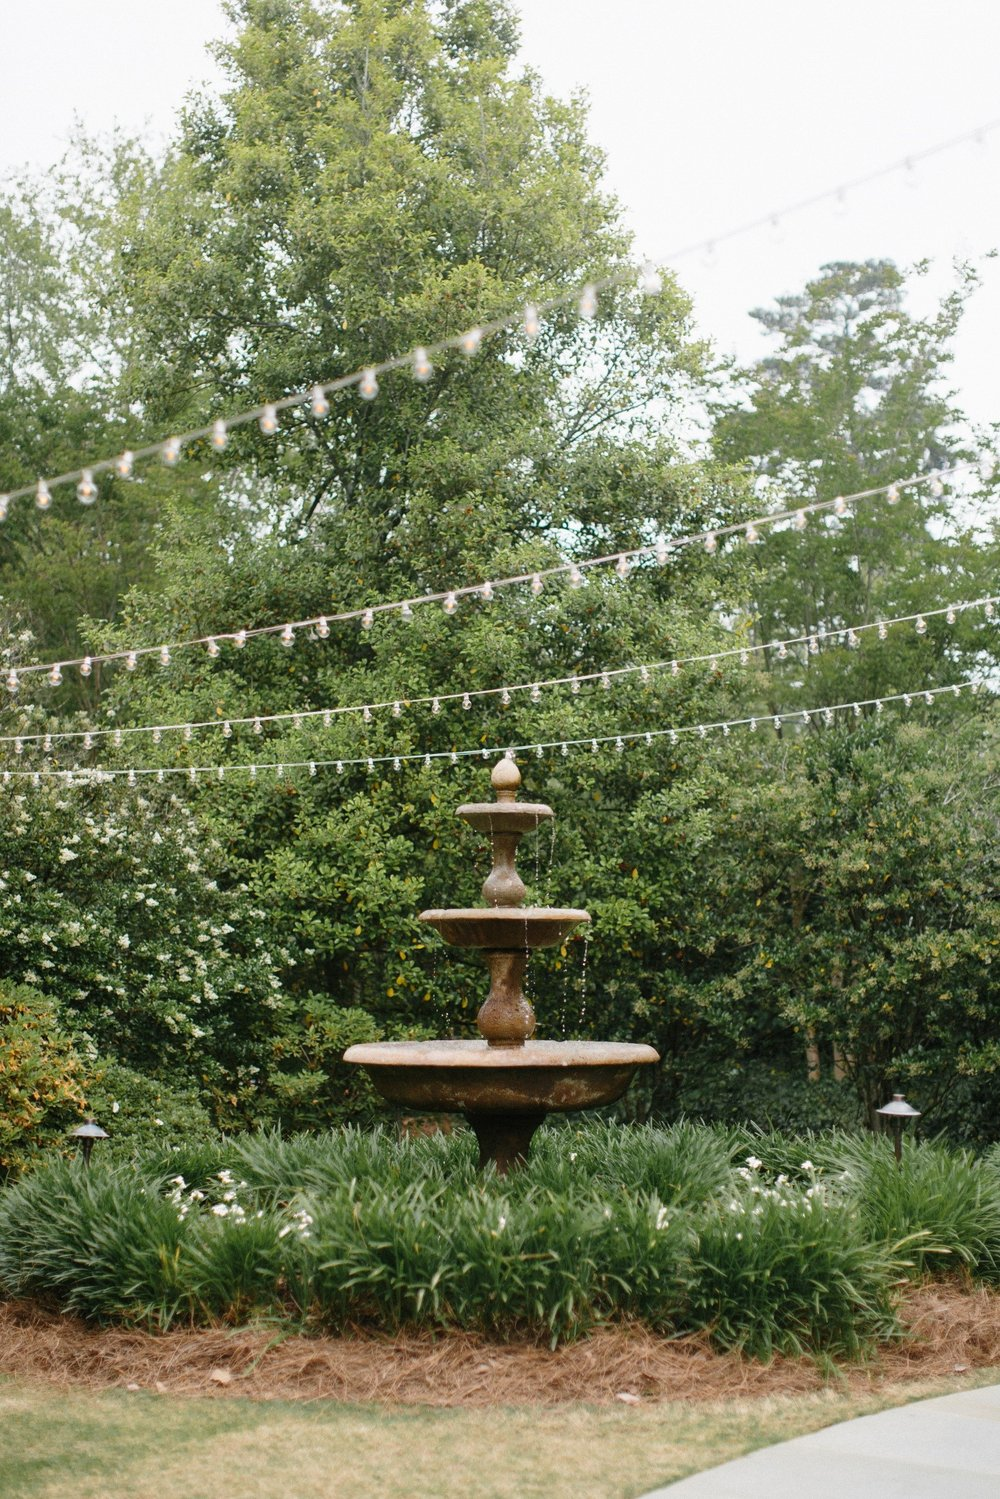 Fountain in Garden 4.jpg